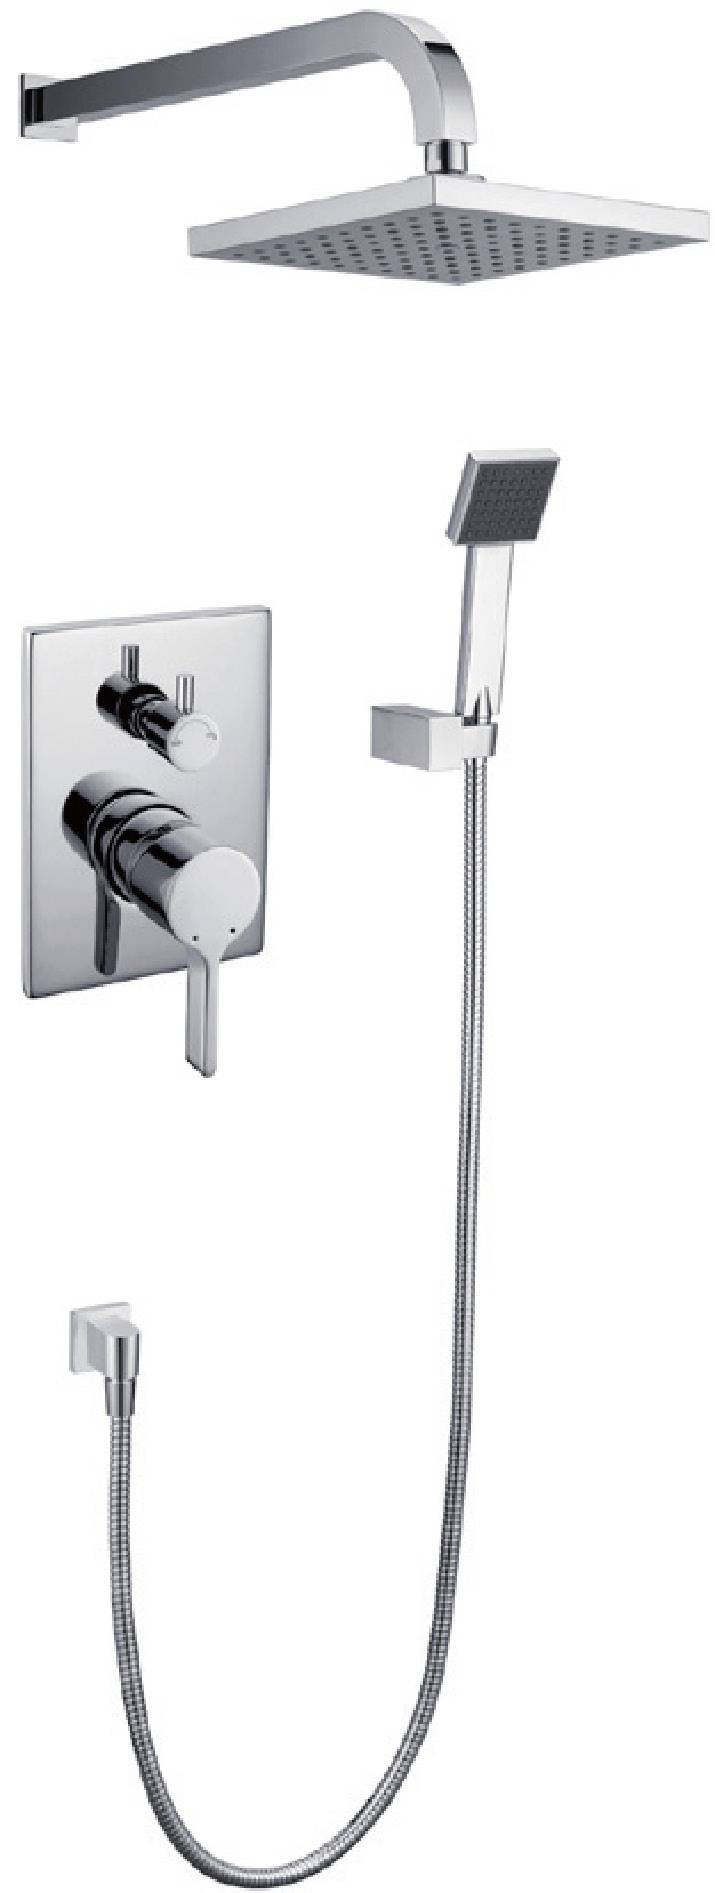 Contemporary chrome brass in-wall bathroom shower faucet